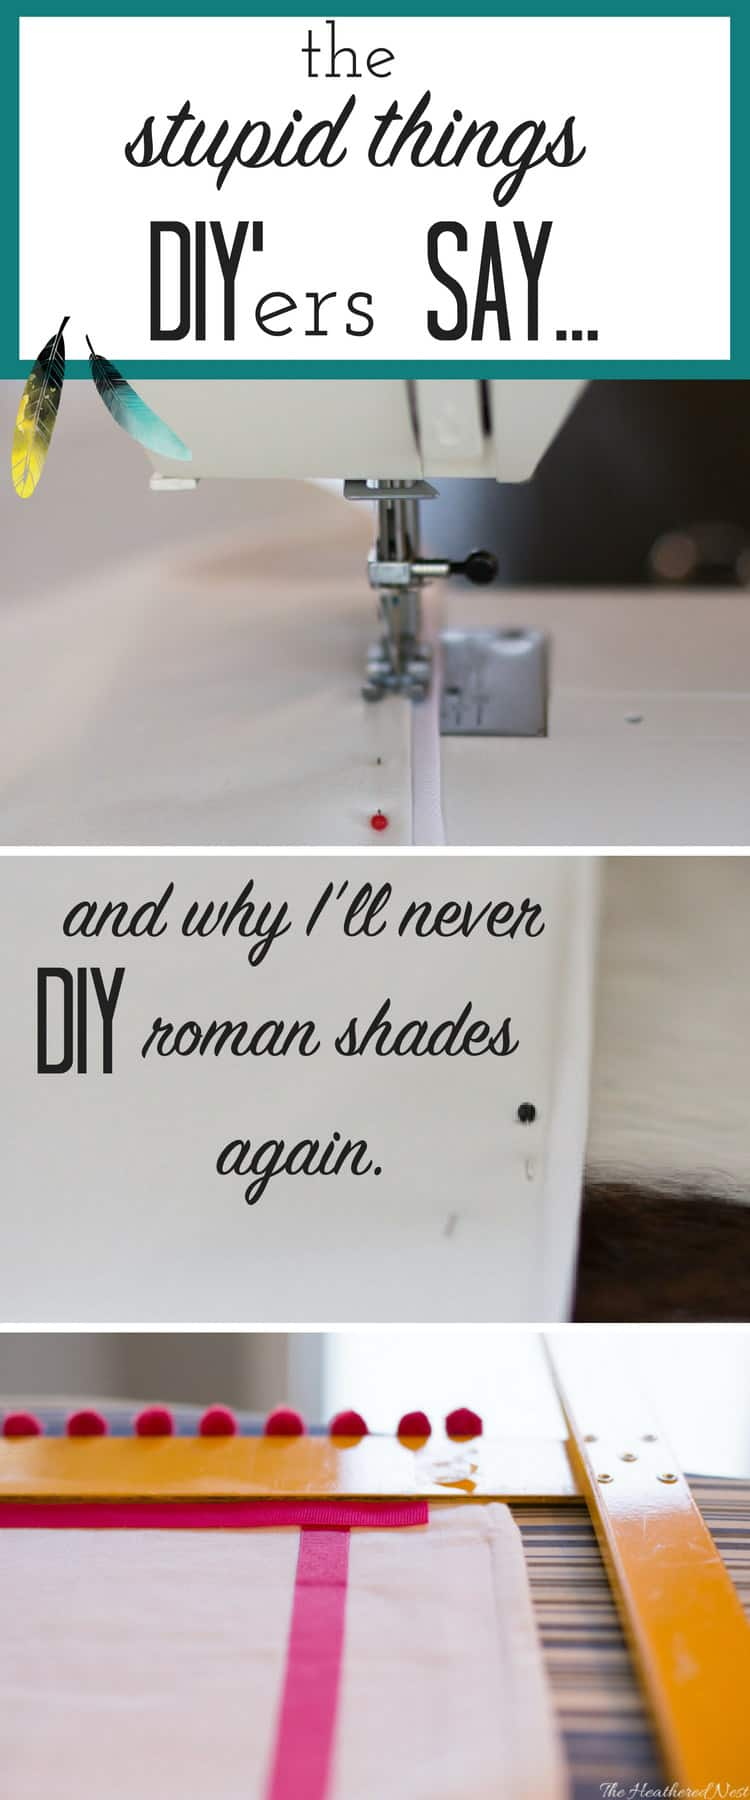 Can you relate??!?! SO FUNNY. I DEFINITELY can!! Gotta love DIY!